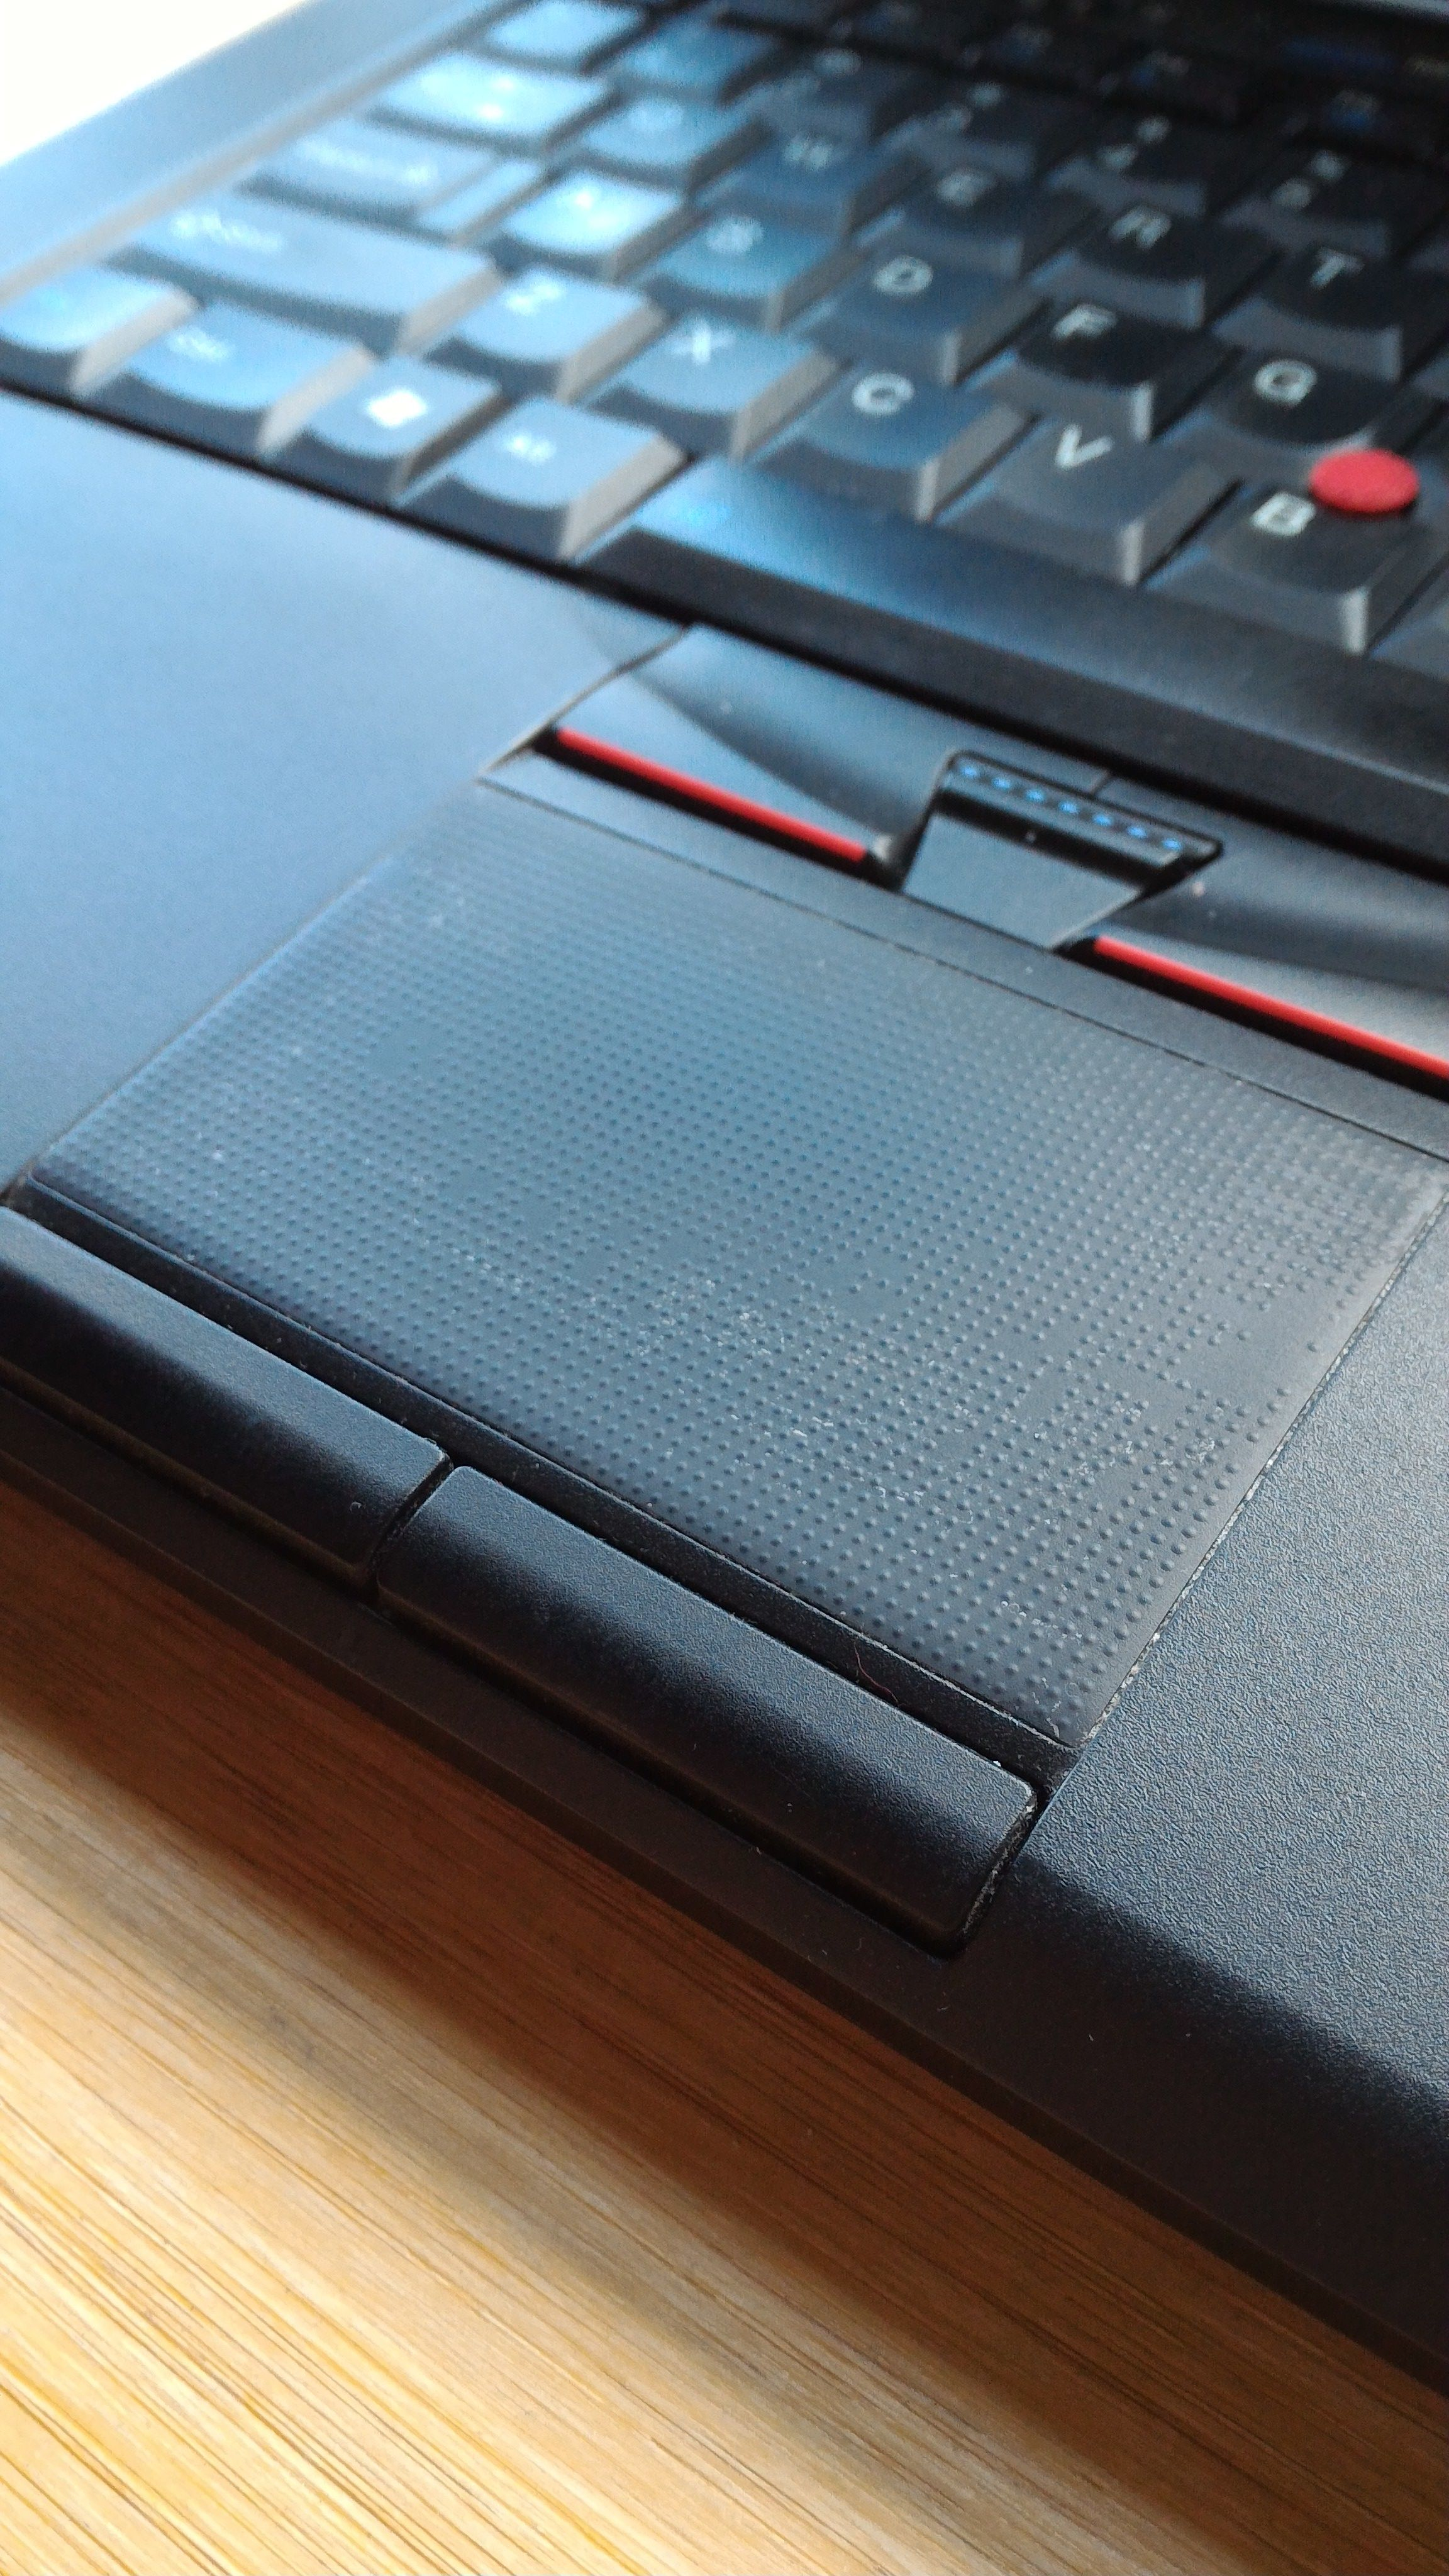 Changing Lenovo T420 Touchpad Sticker - Overclock net - An